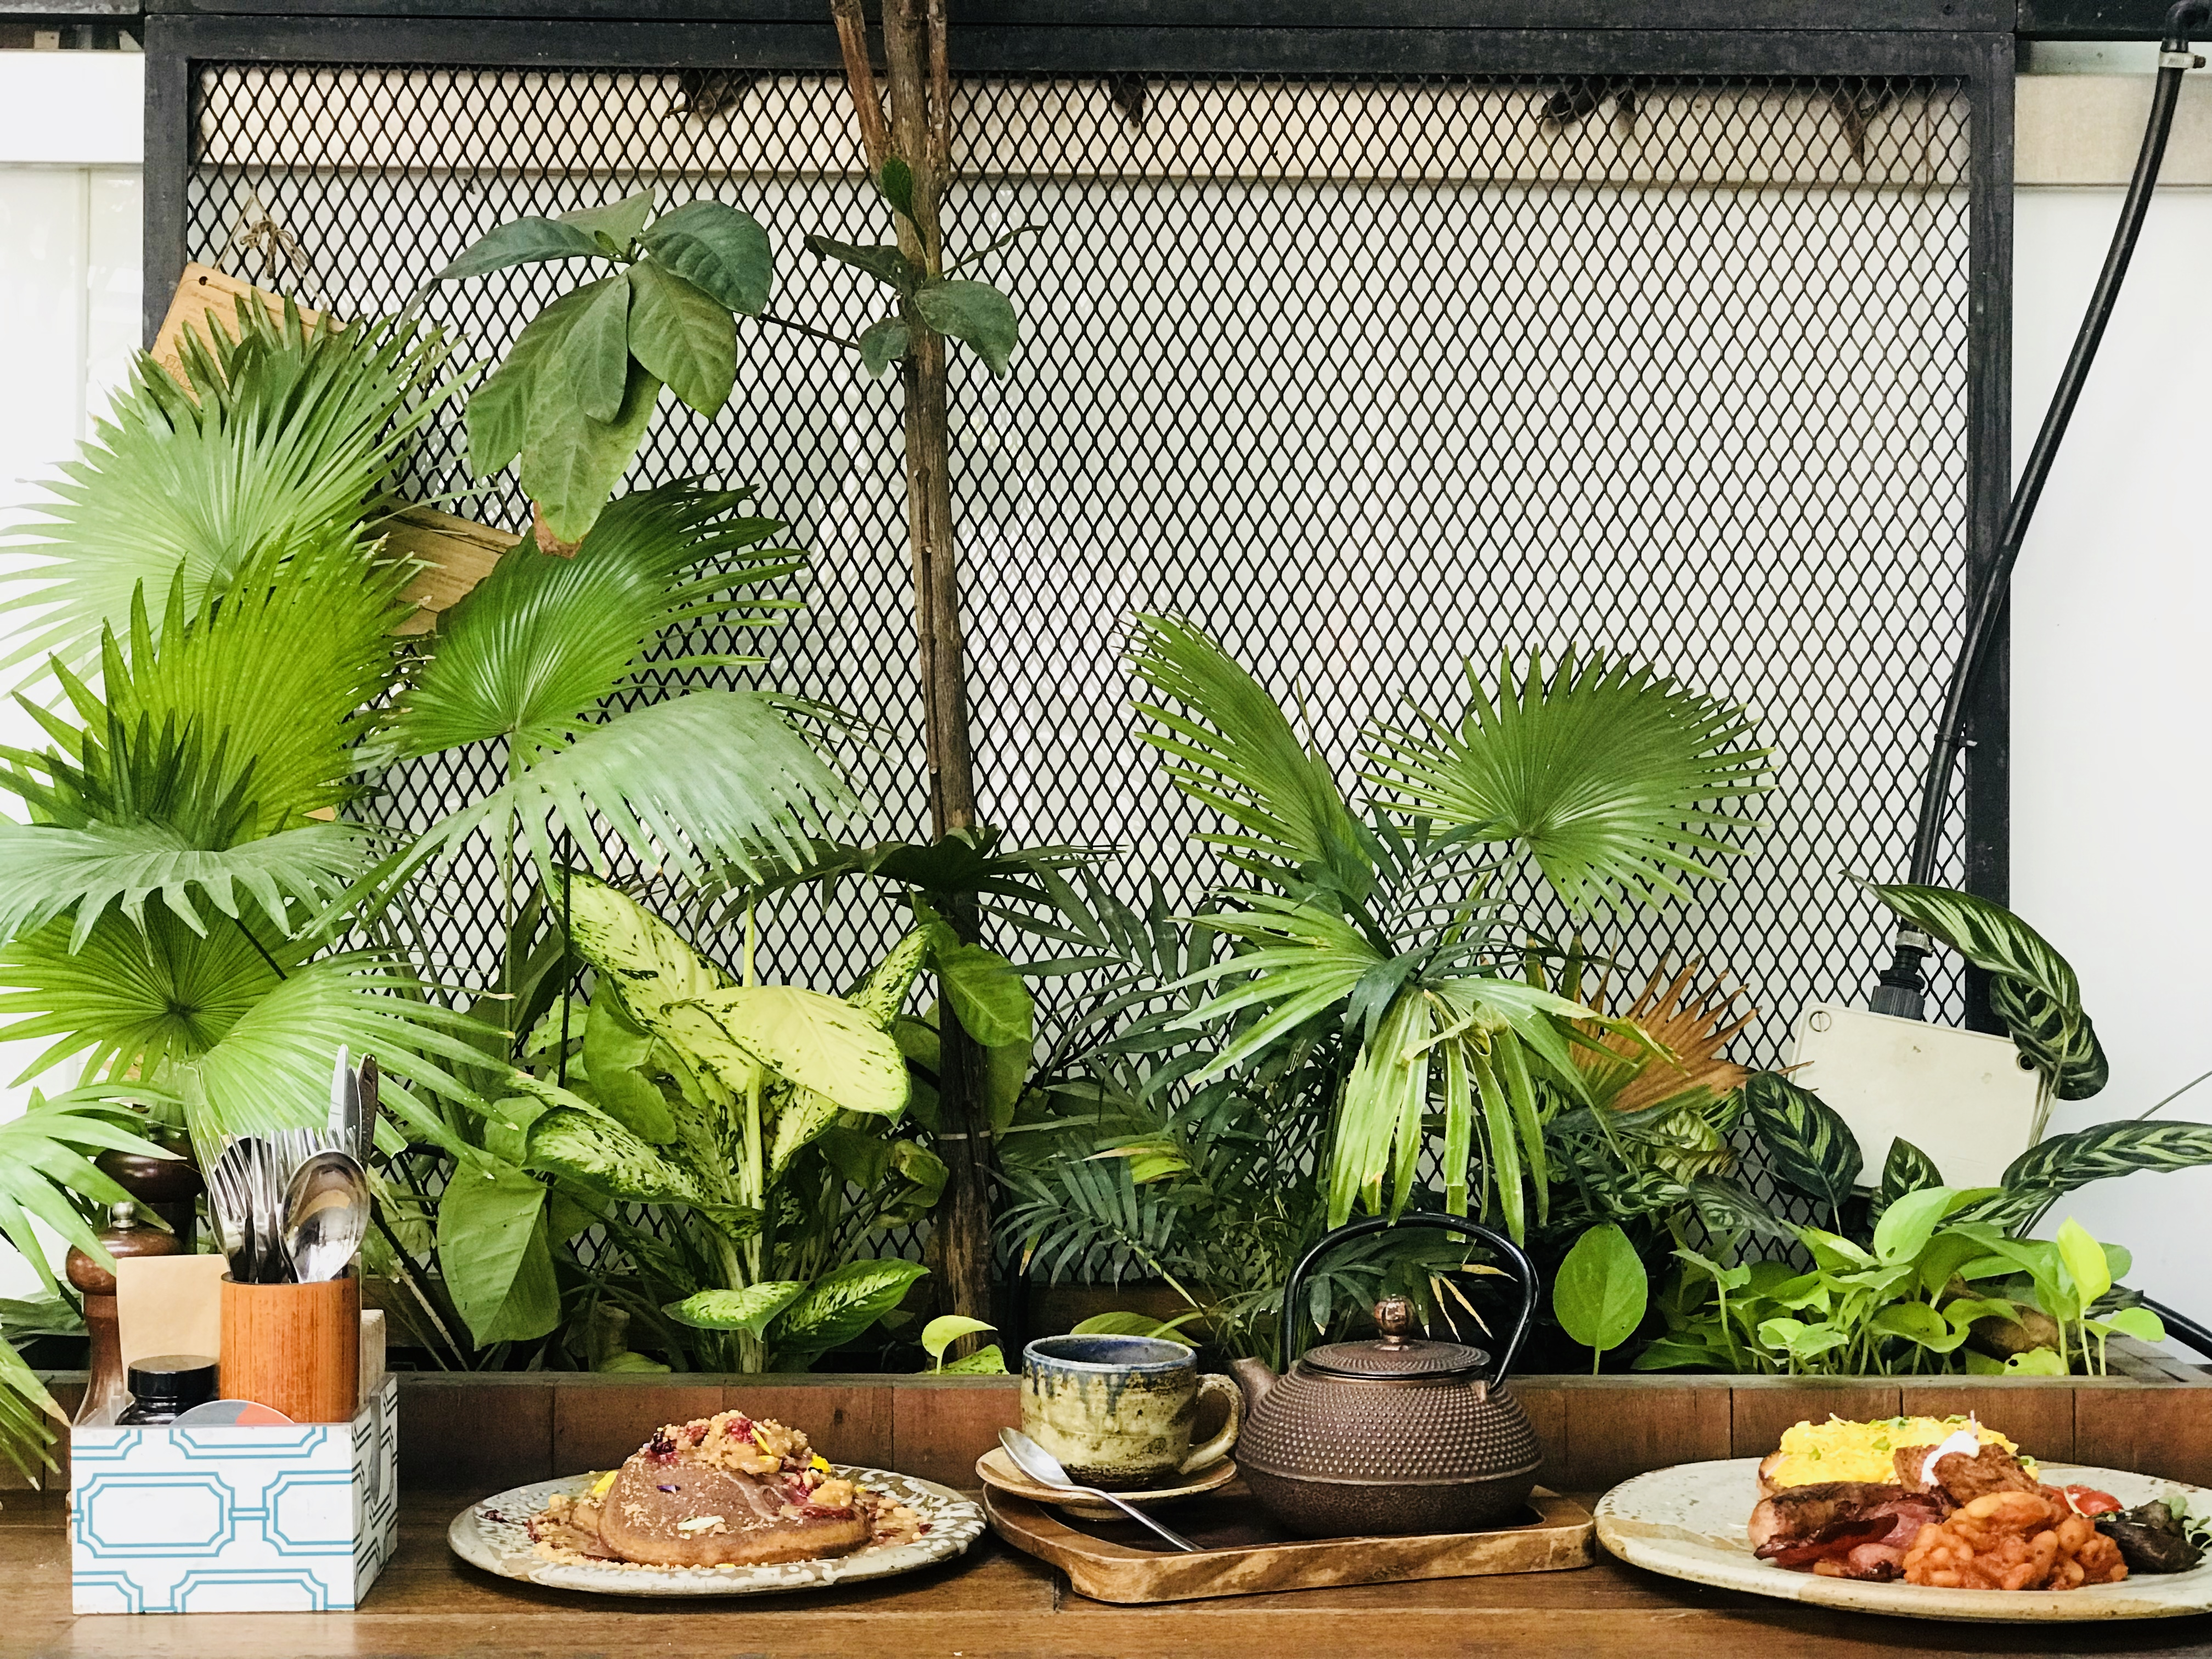 6 Must Try Places For An 'Ozzie' Brunch In Singapore